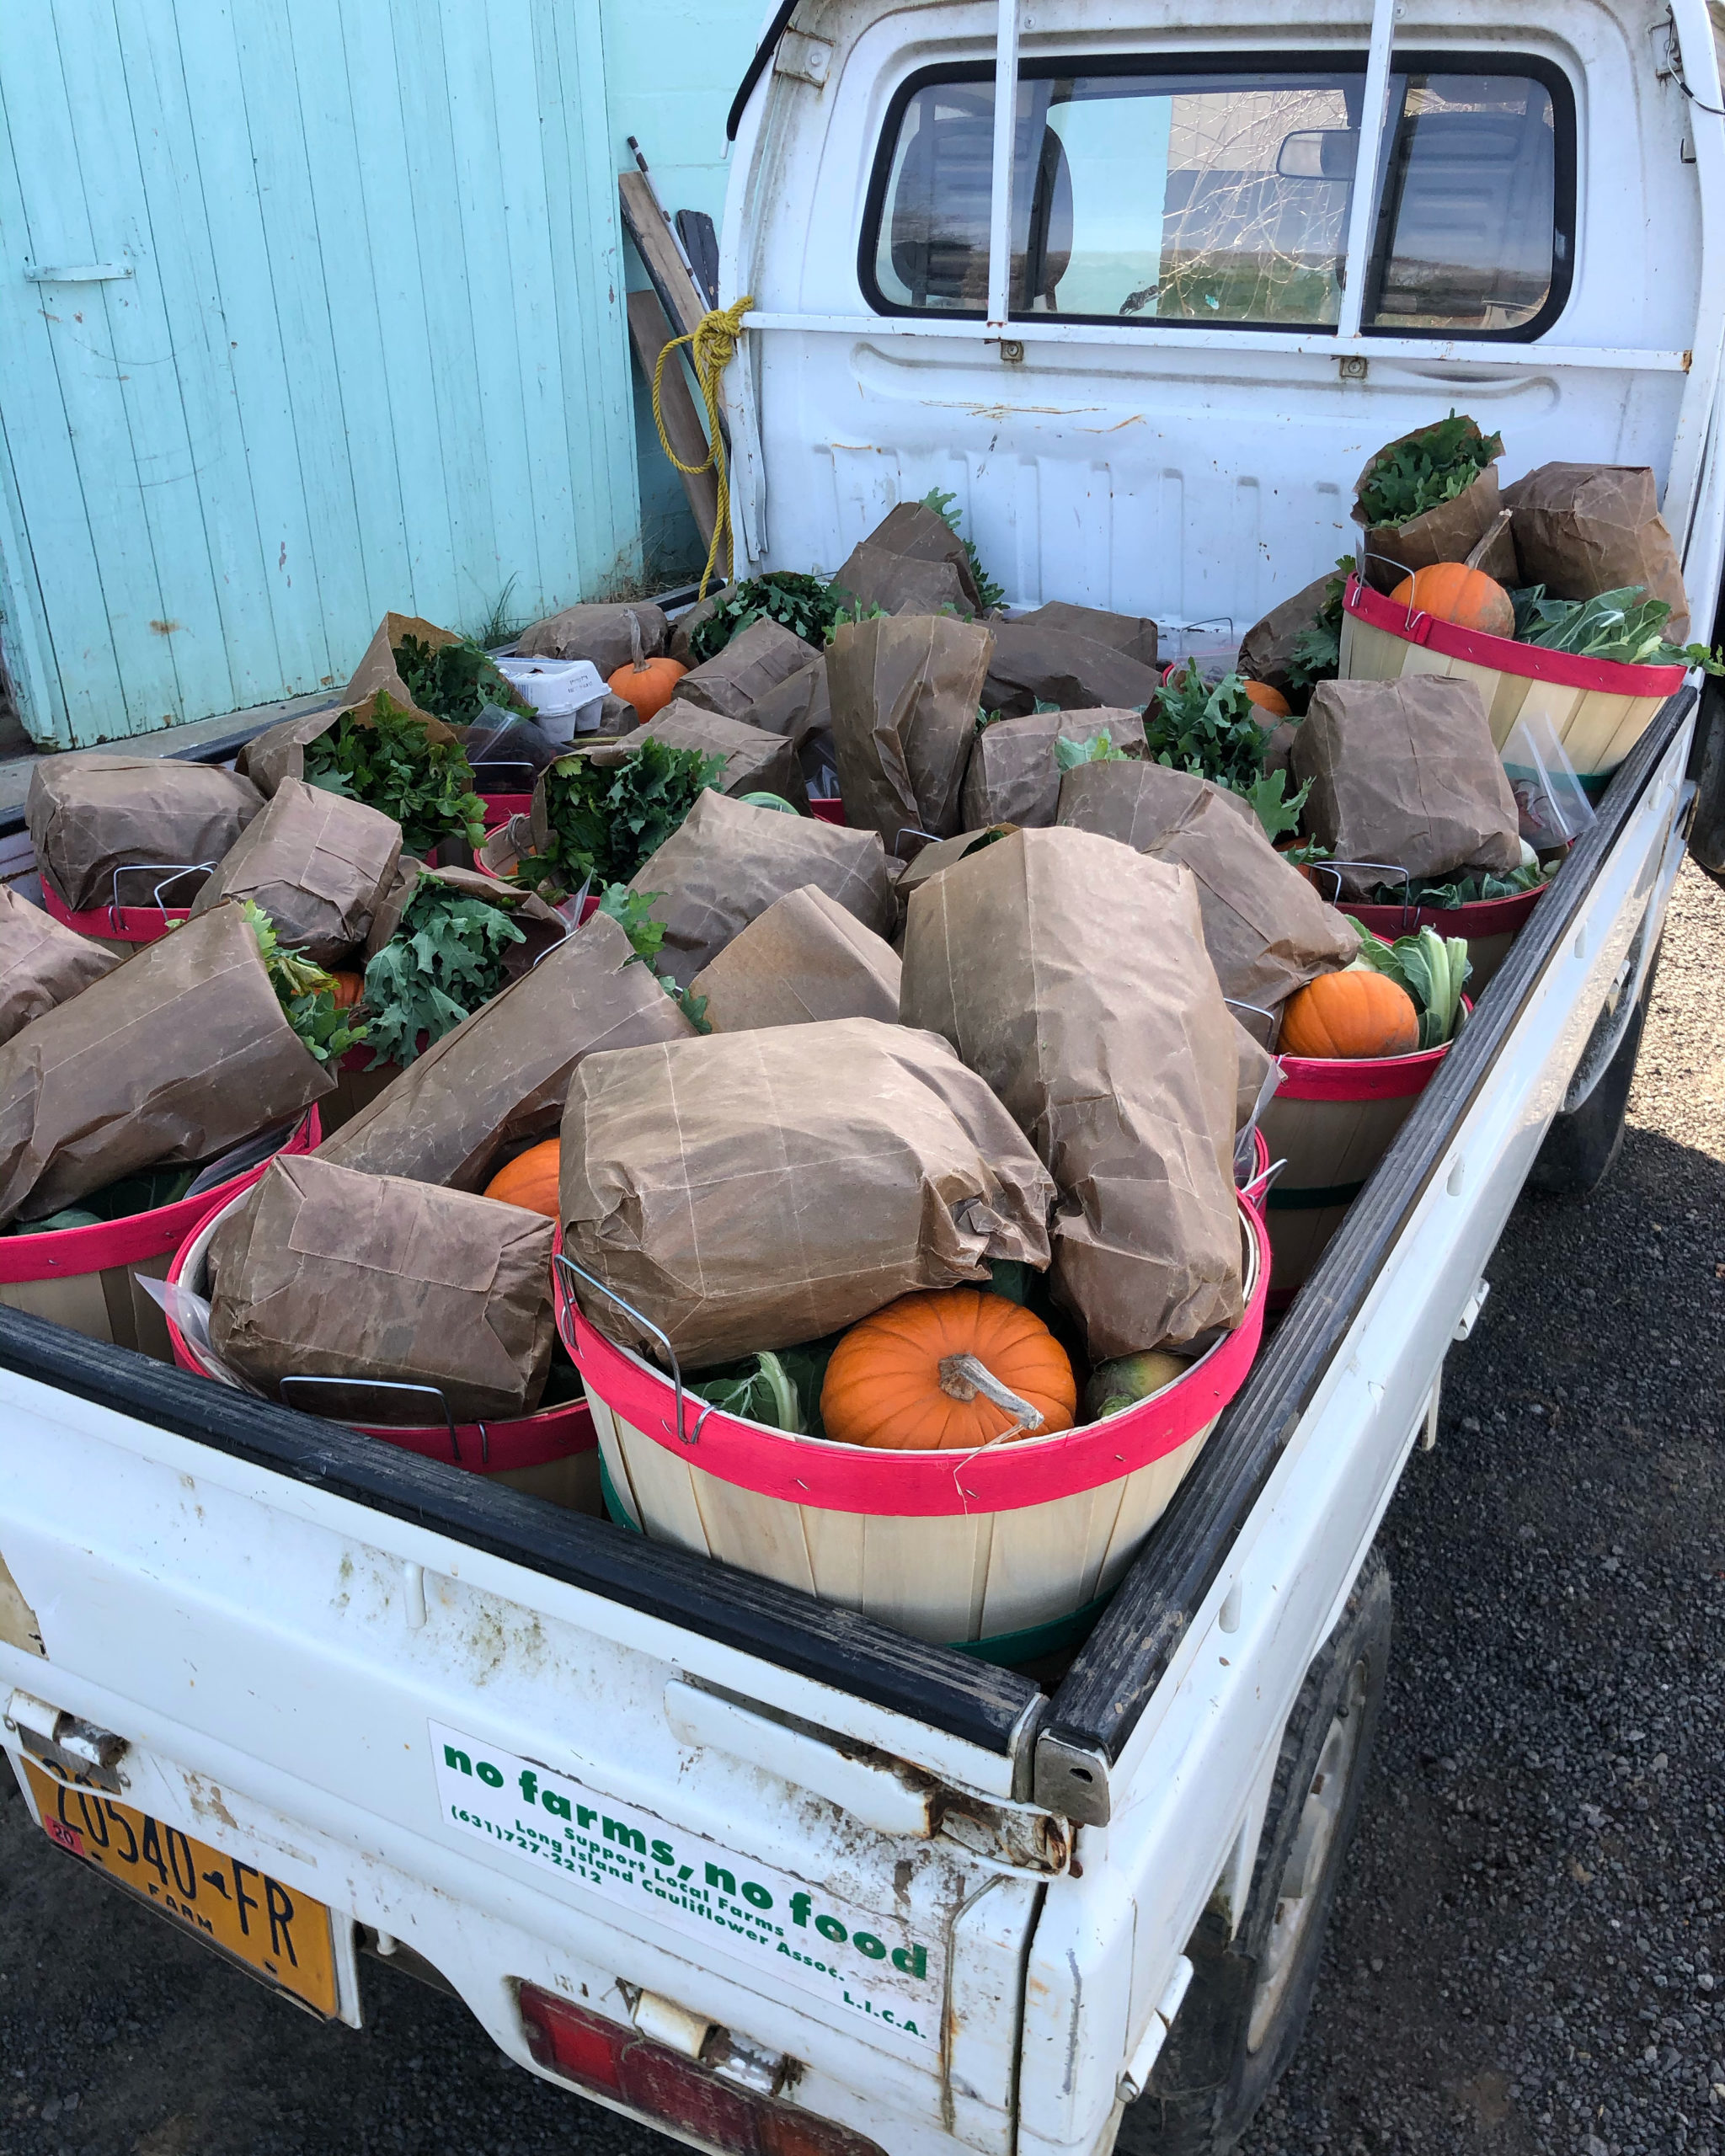 A pick-up truck loaded with bushels filled with Marilee Farmstand CSA shares.